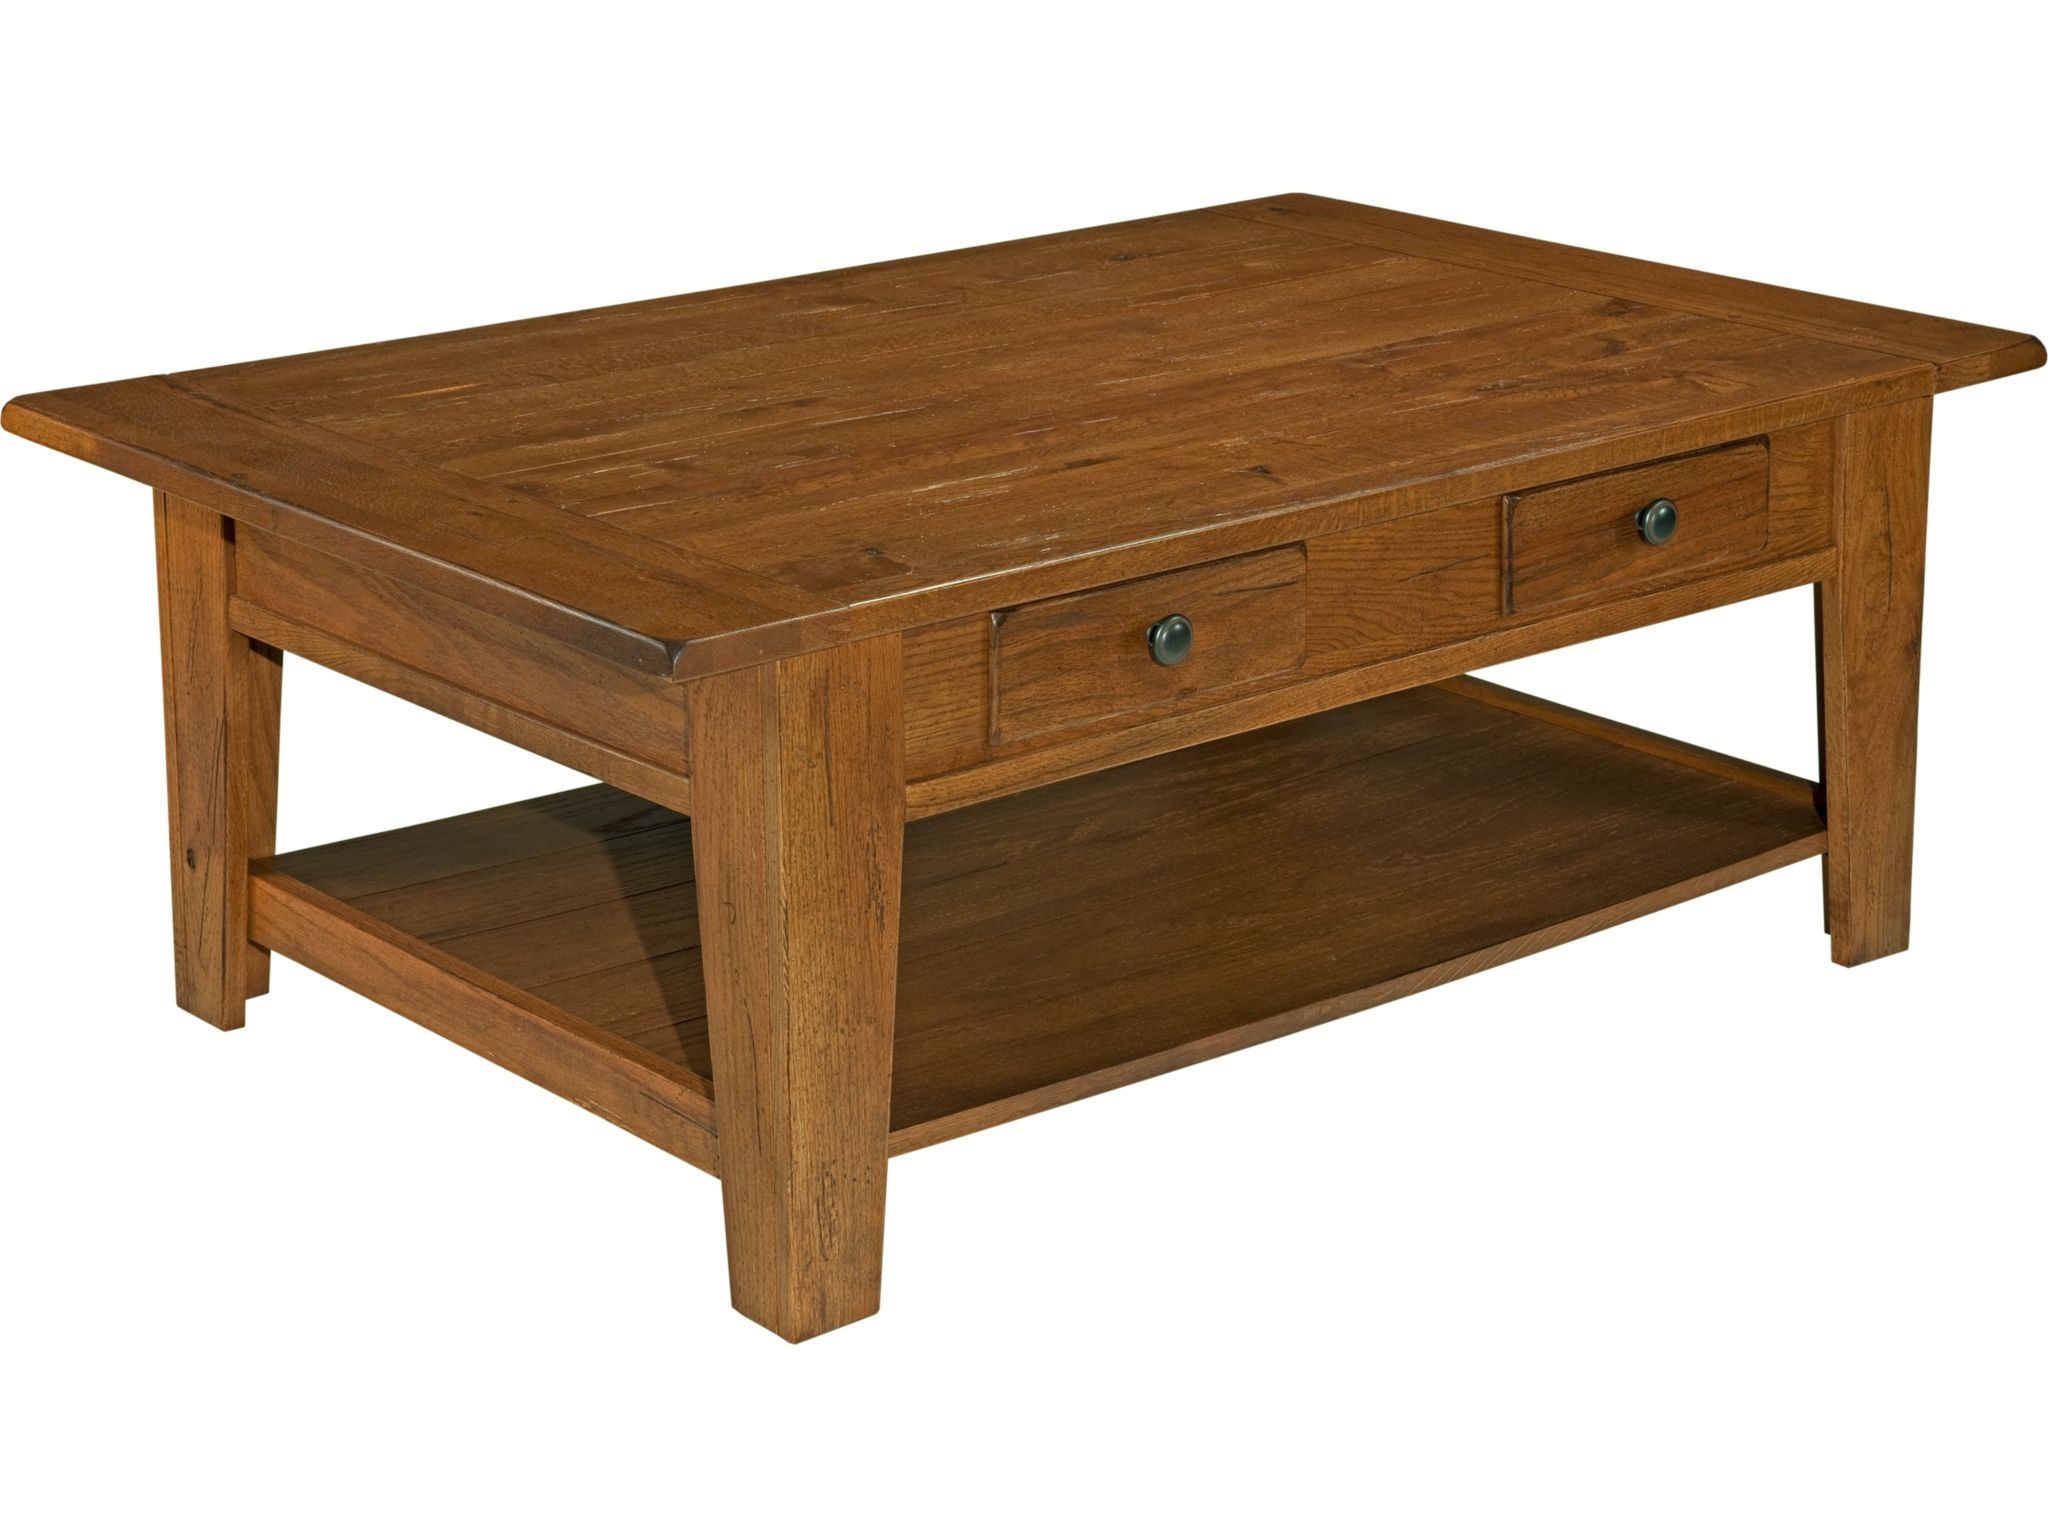 Broyhill Attic Heirlooms Cocktail Table, Rustic Oak 3399 01V